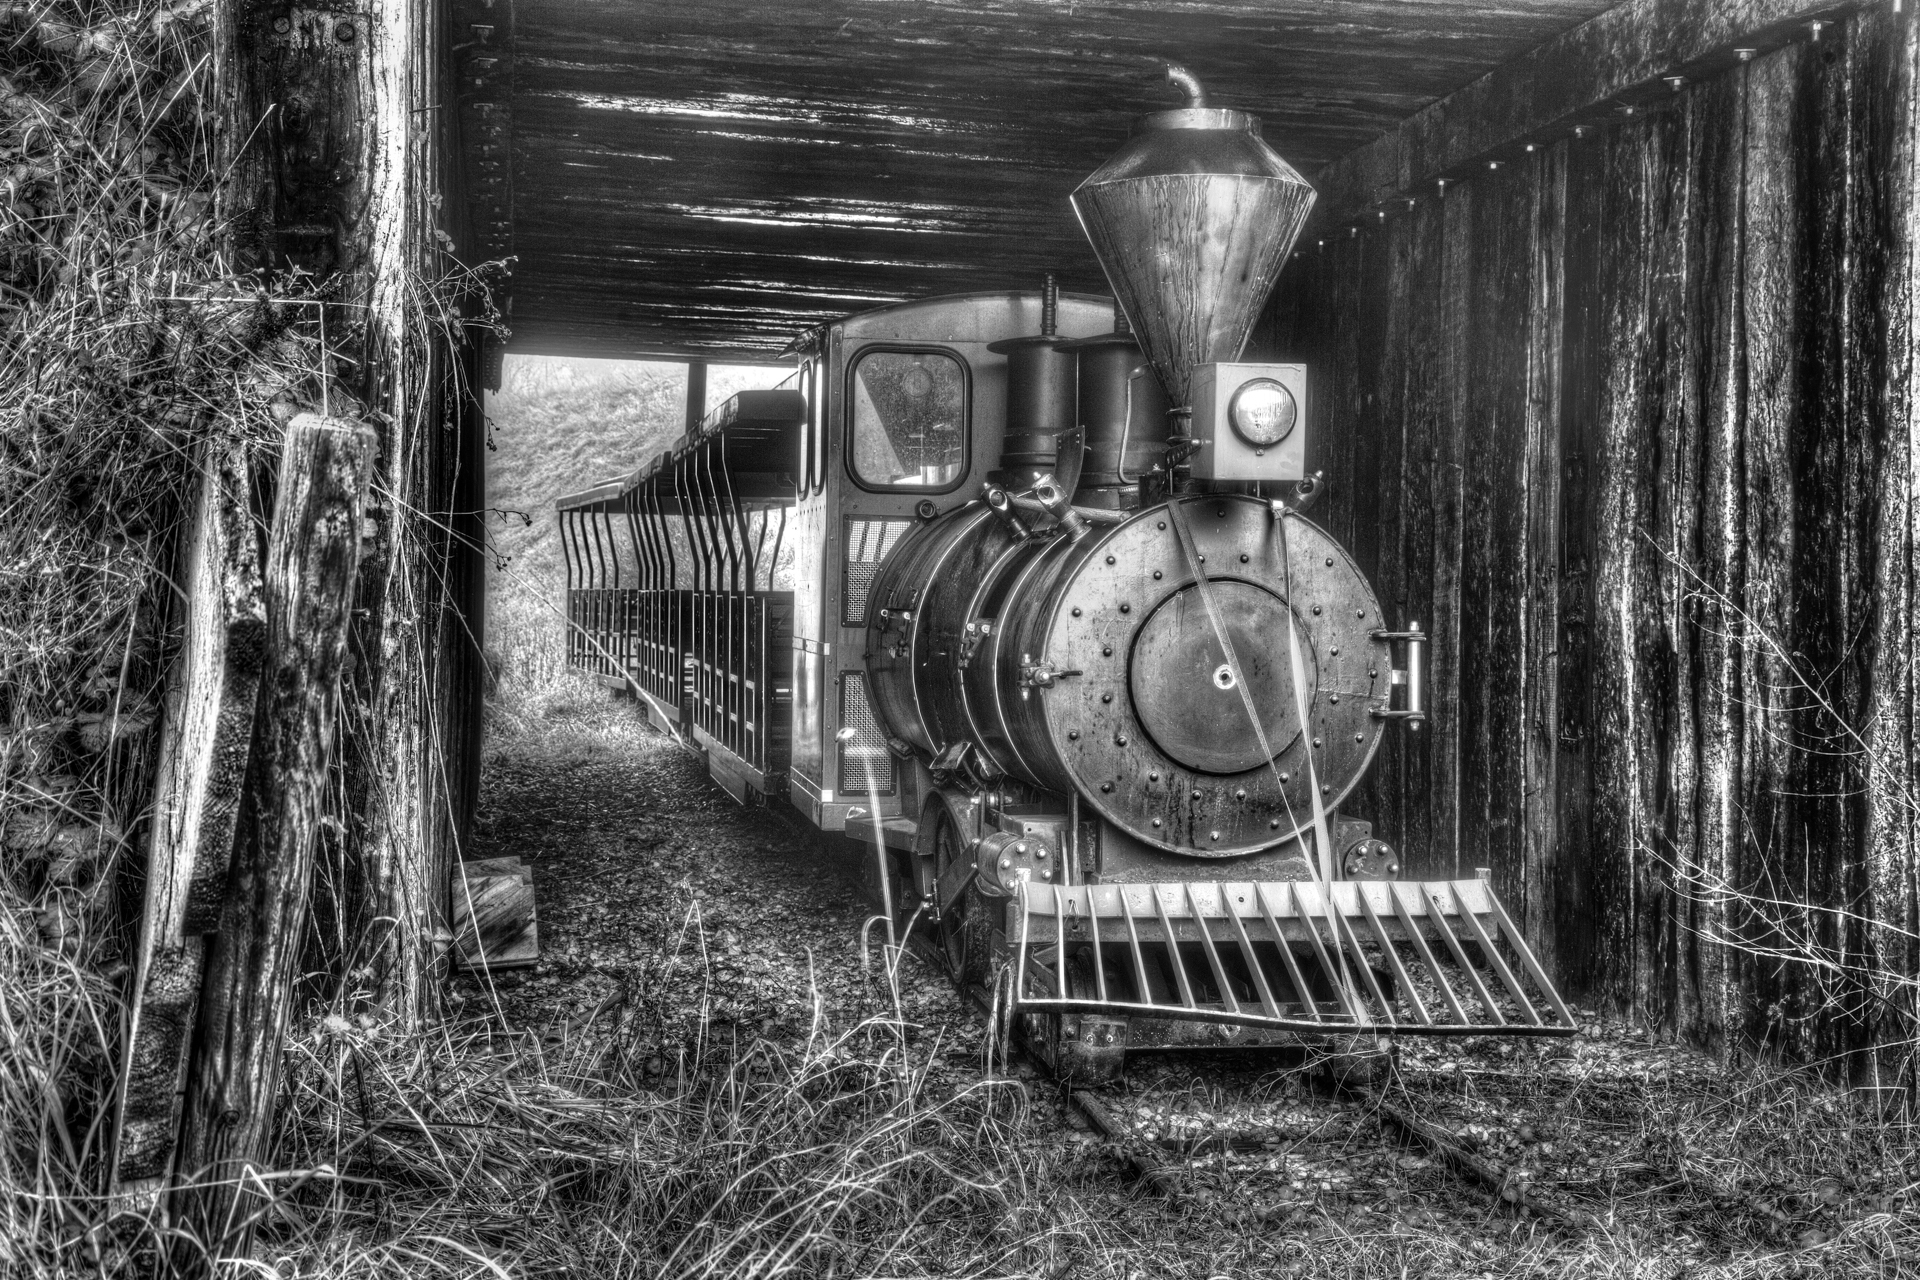 Urbex - Wayne City - Wayne Train